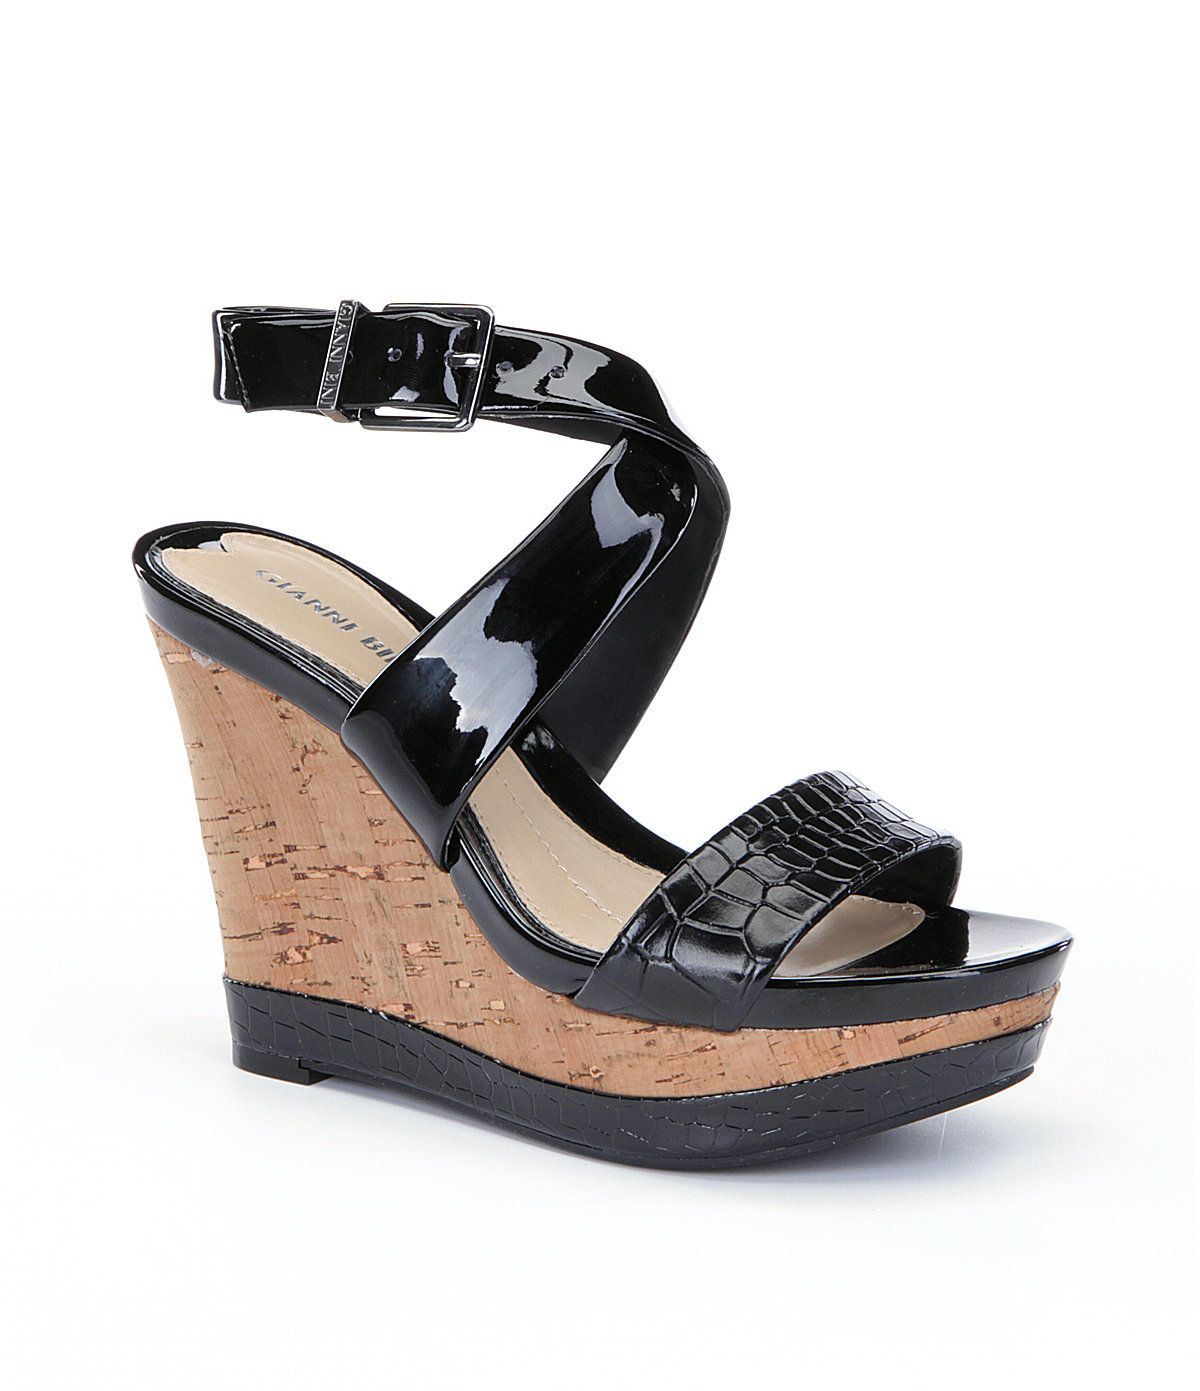 737df41ddaf Gianni Bini Korah Espadrille Wedge Sandals